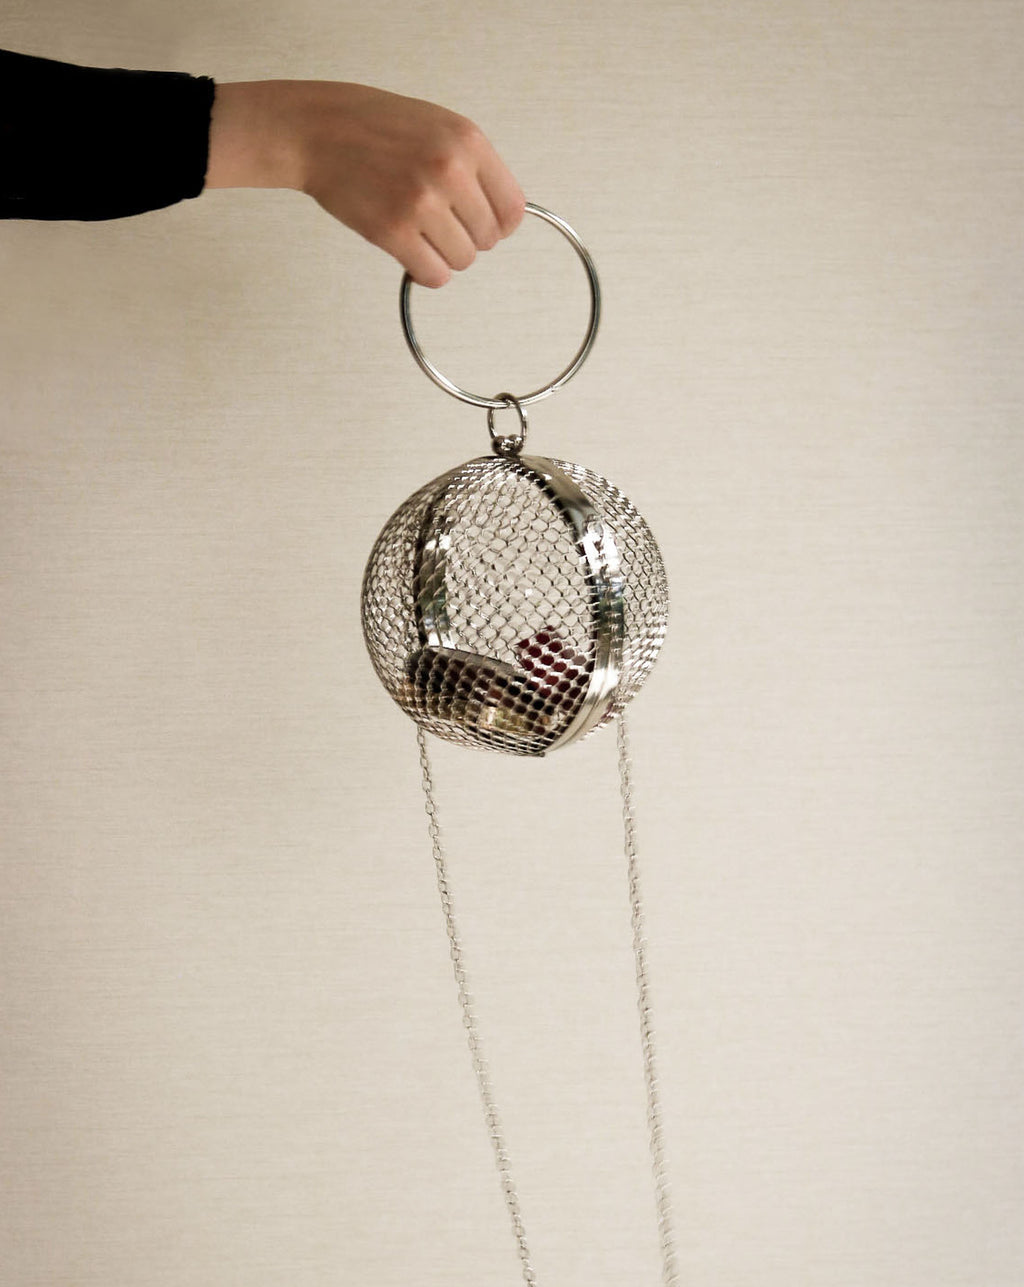 Geometric silver cage bag carried as a clutch or with a detachable chain - TheHexad